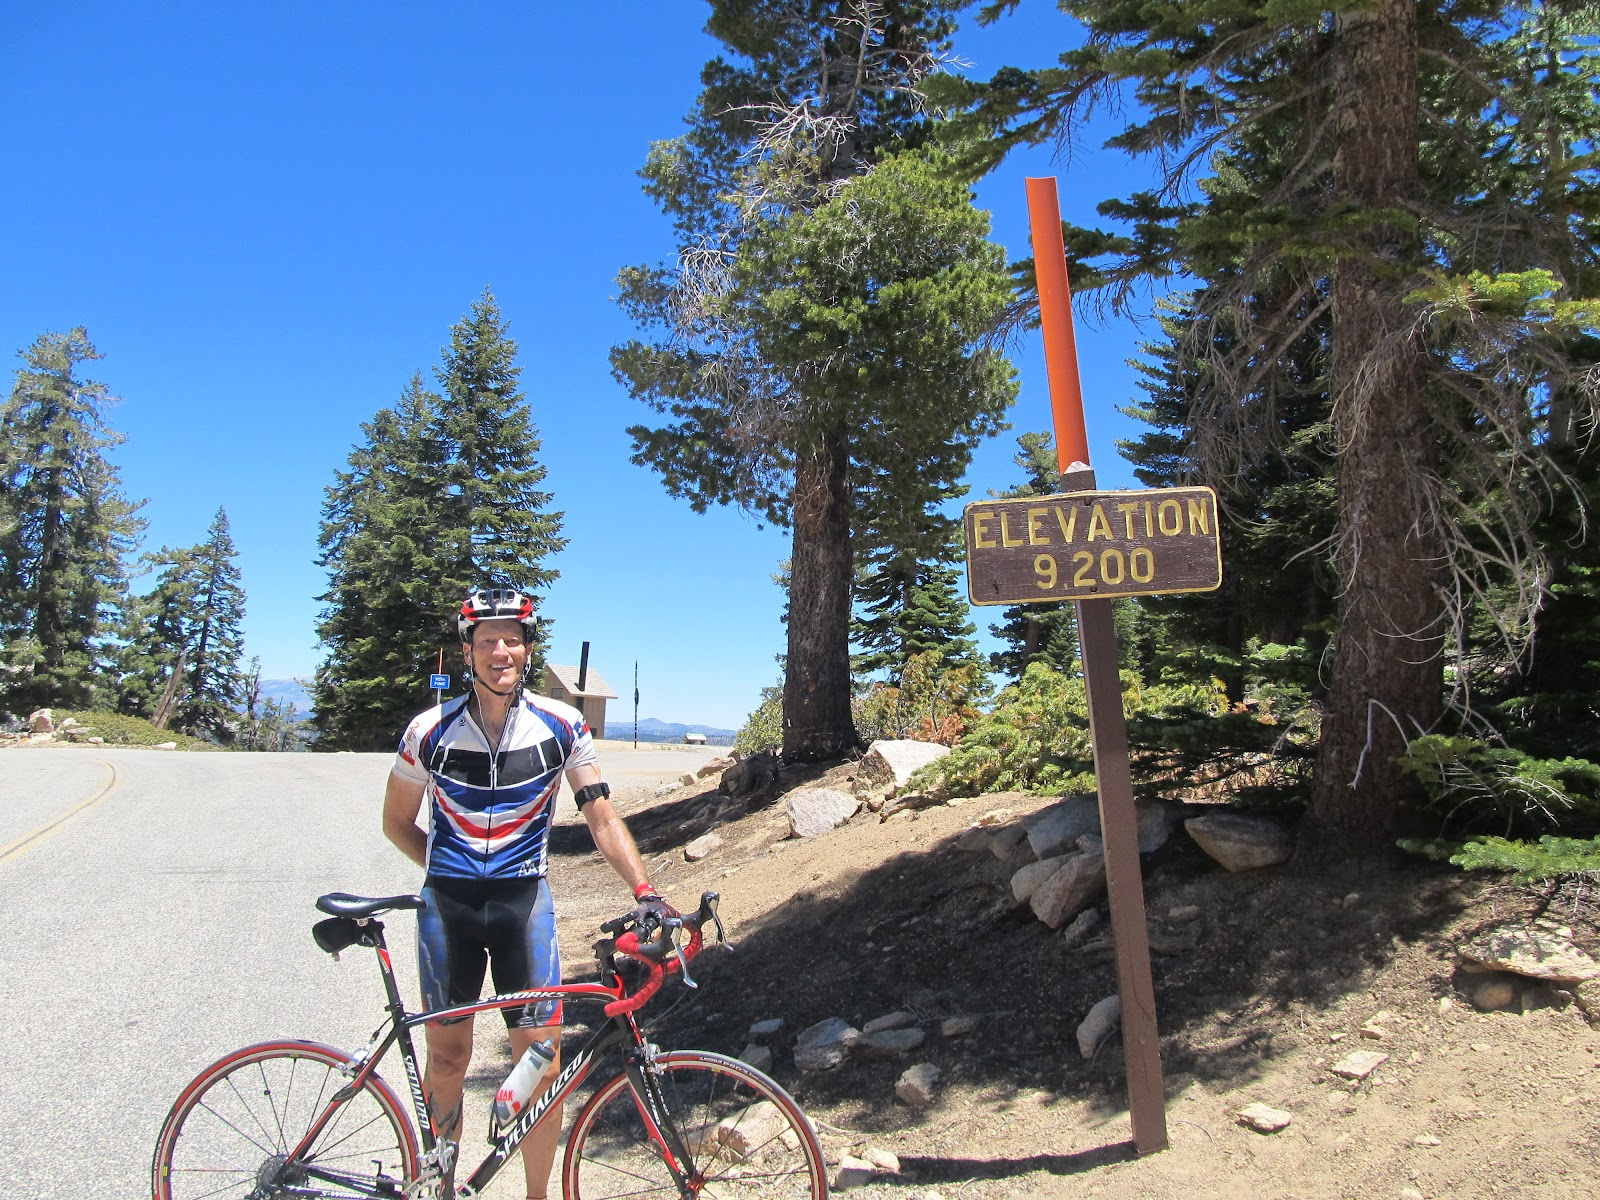 Climbing Sherman Pass by bike - elevation sign and cyclist with bike.